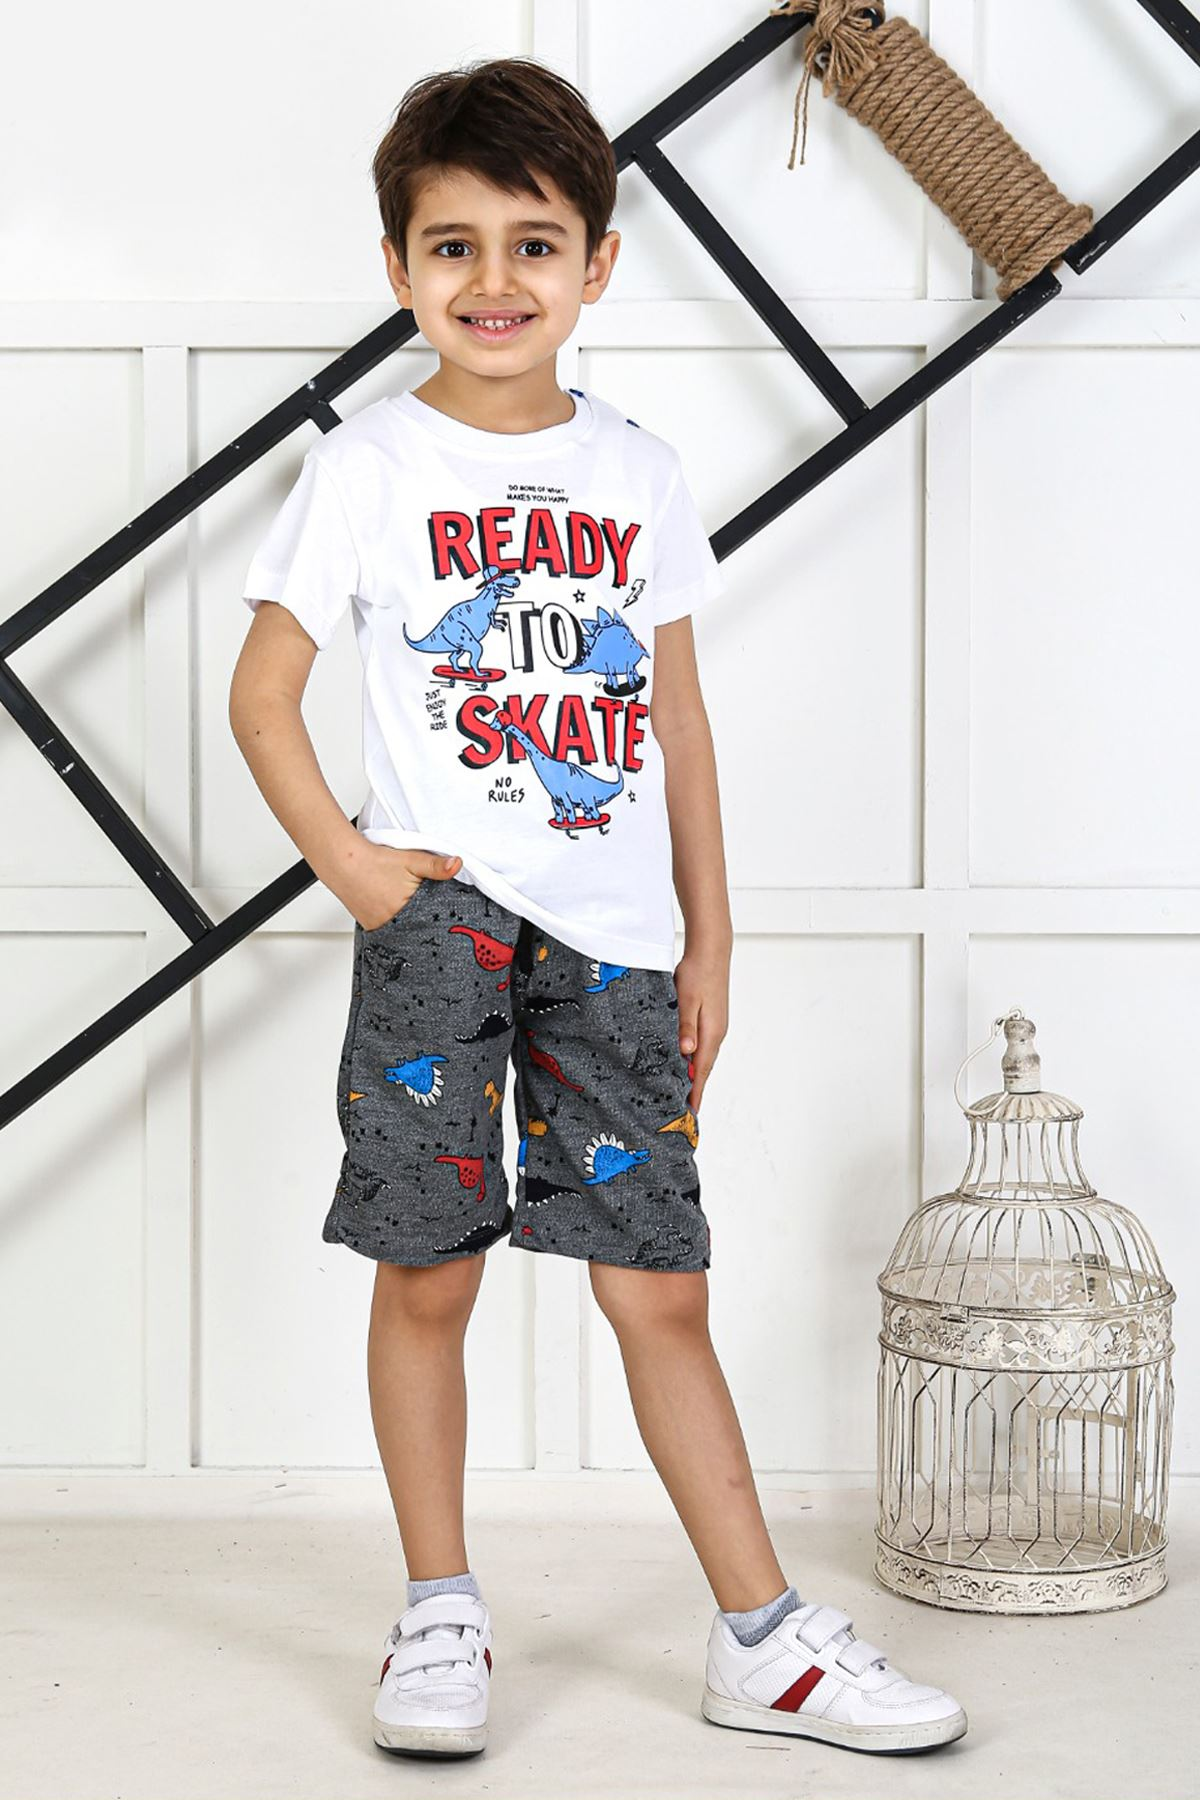 White Baby Boy Teenage Male Clothes Suit Summer Male Children T-Shirt Shorts 2 Piece Clothing Set Beach Boys outfits Sport Model